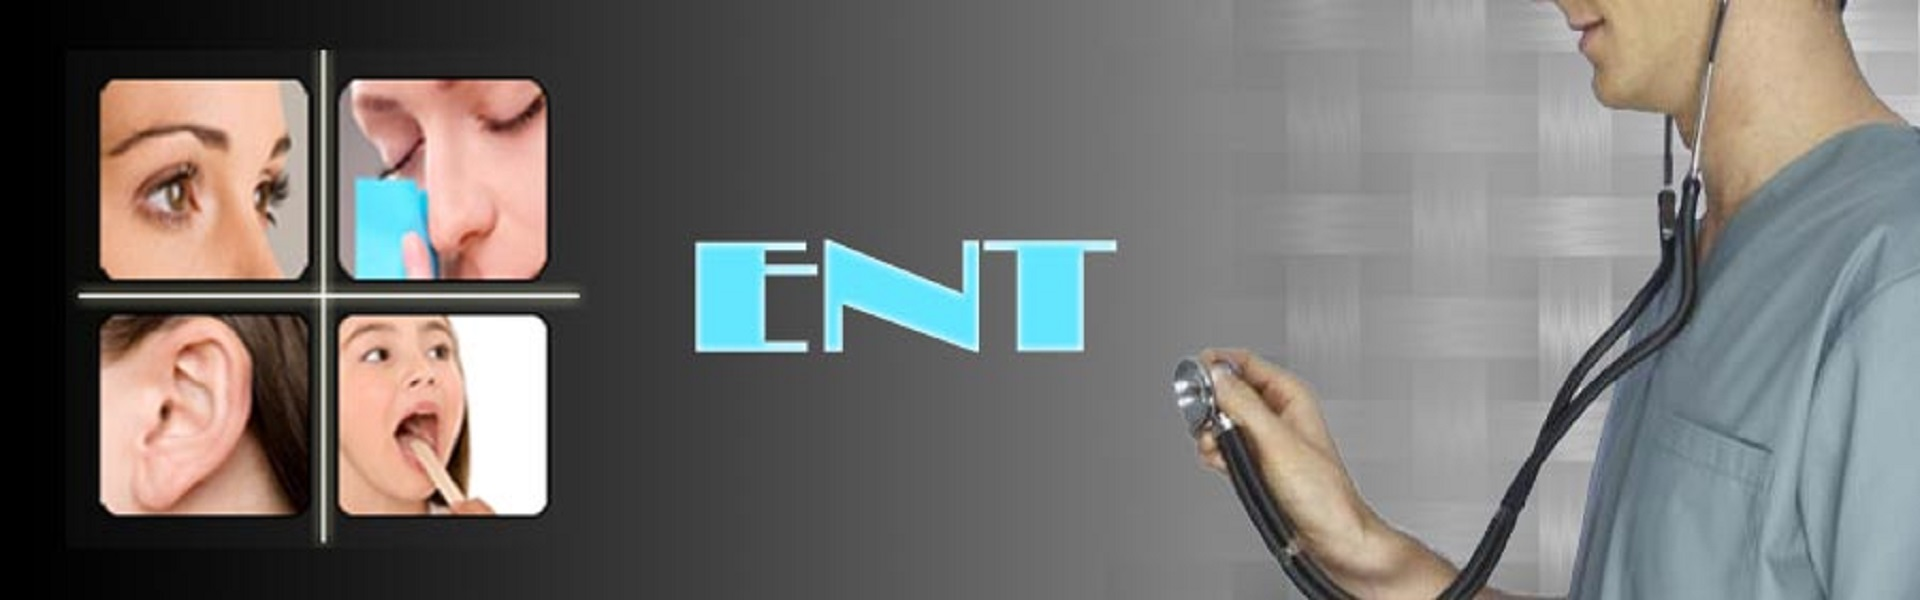 Ent cover2